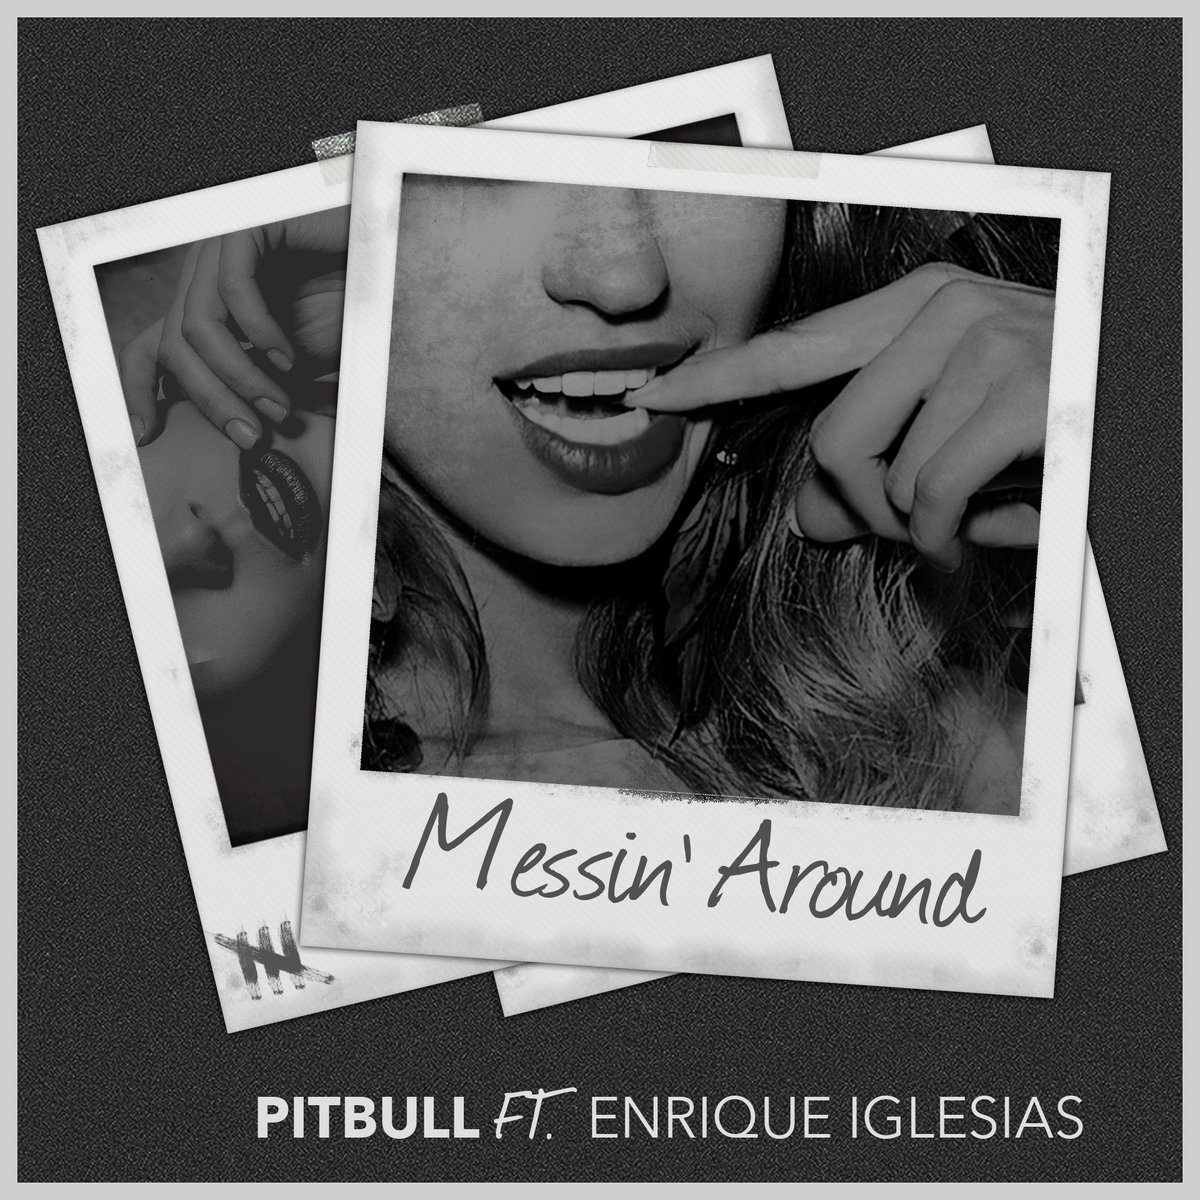 She's got me like na na na na na  #MessinAround RT @pitbull: Anyone Messin' Around today?  https://t.co/Y8ncUU3Ran https://t.co/bQeST9EpL0